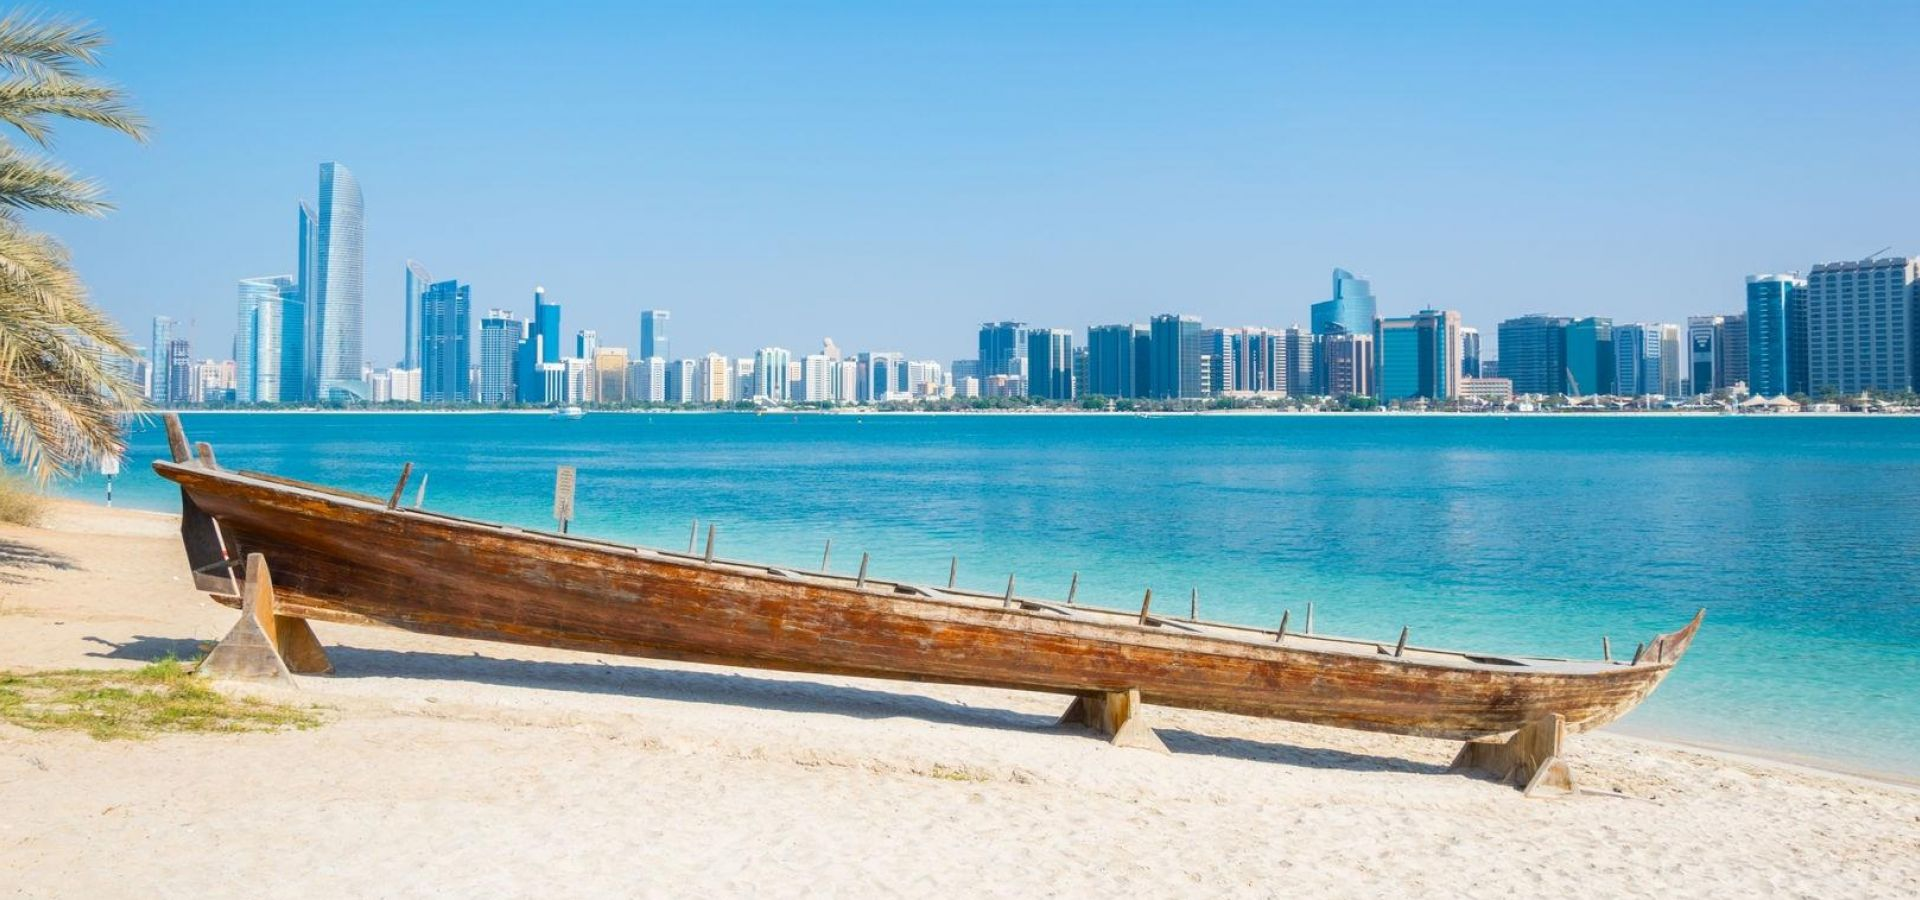 culture hotspots in Abu Dhabi